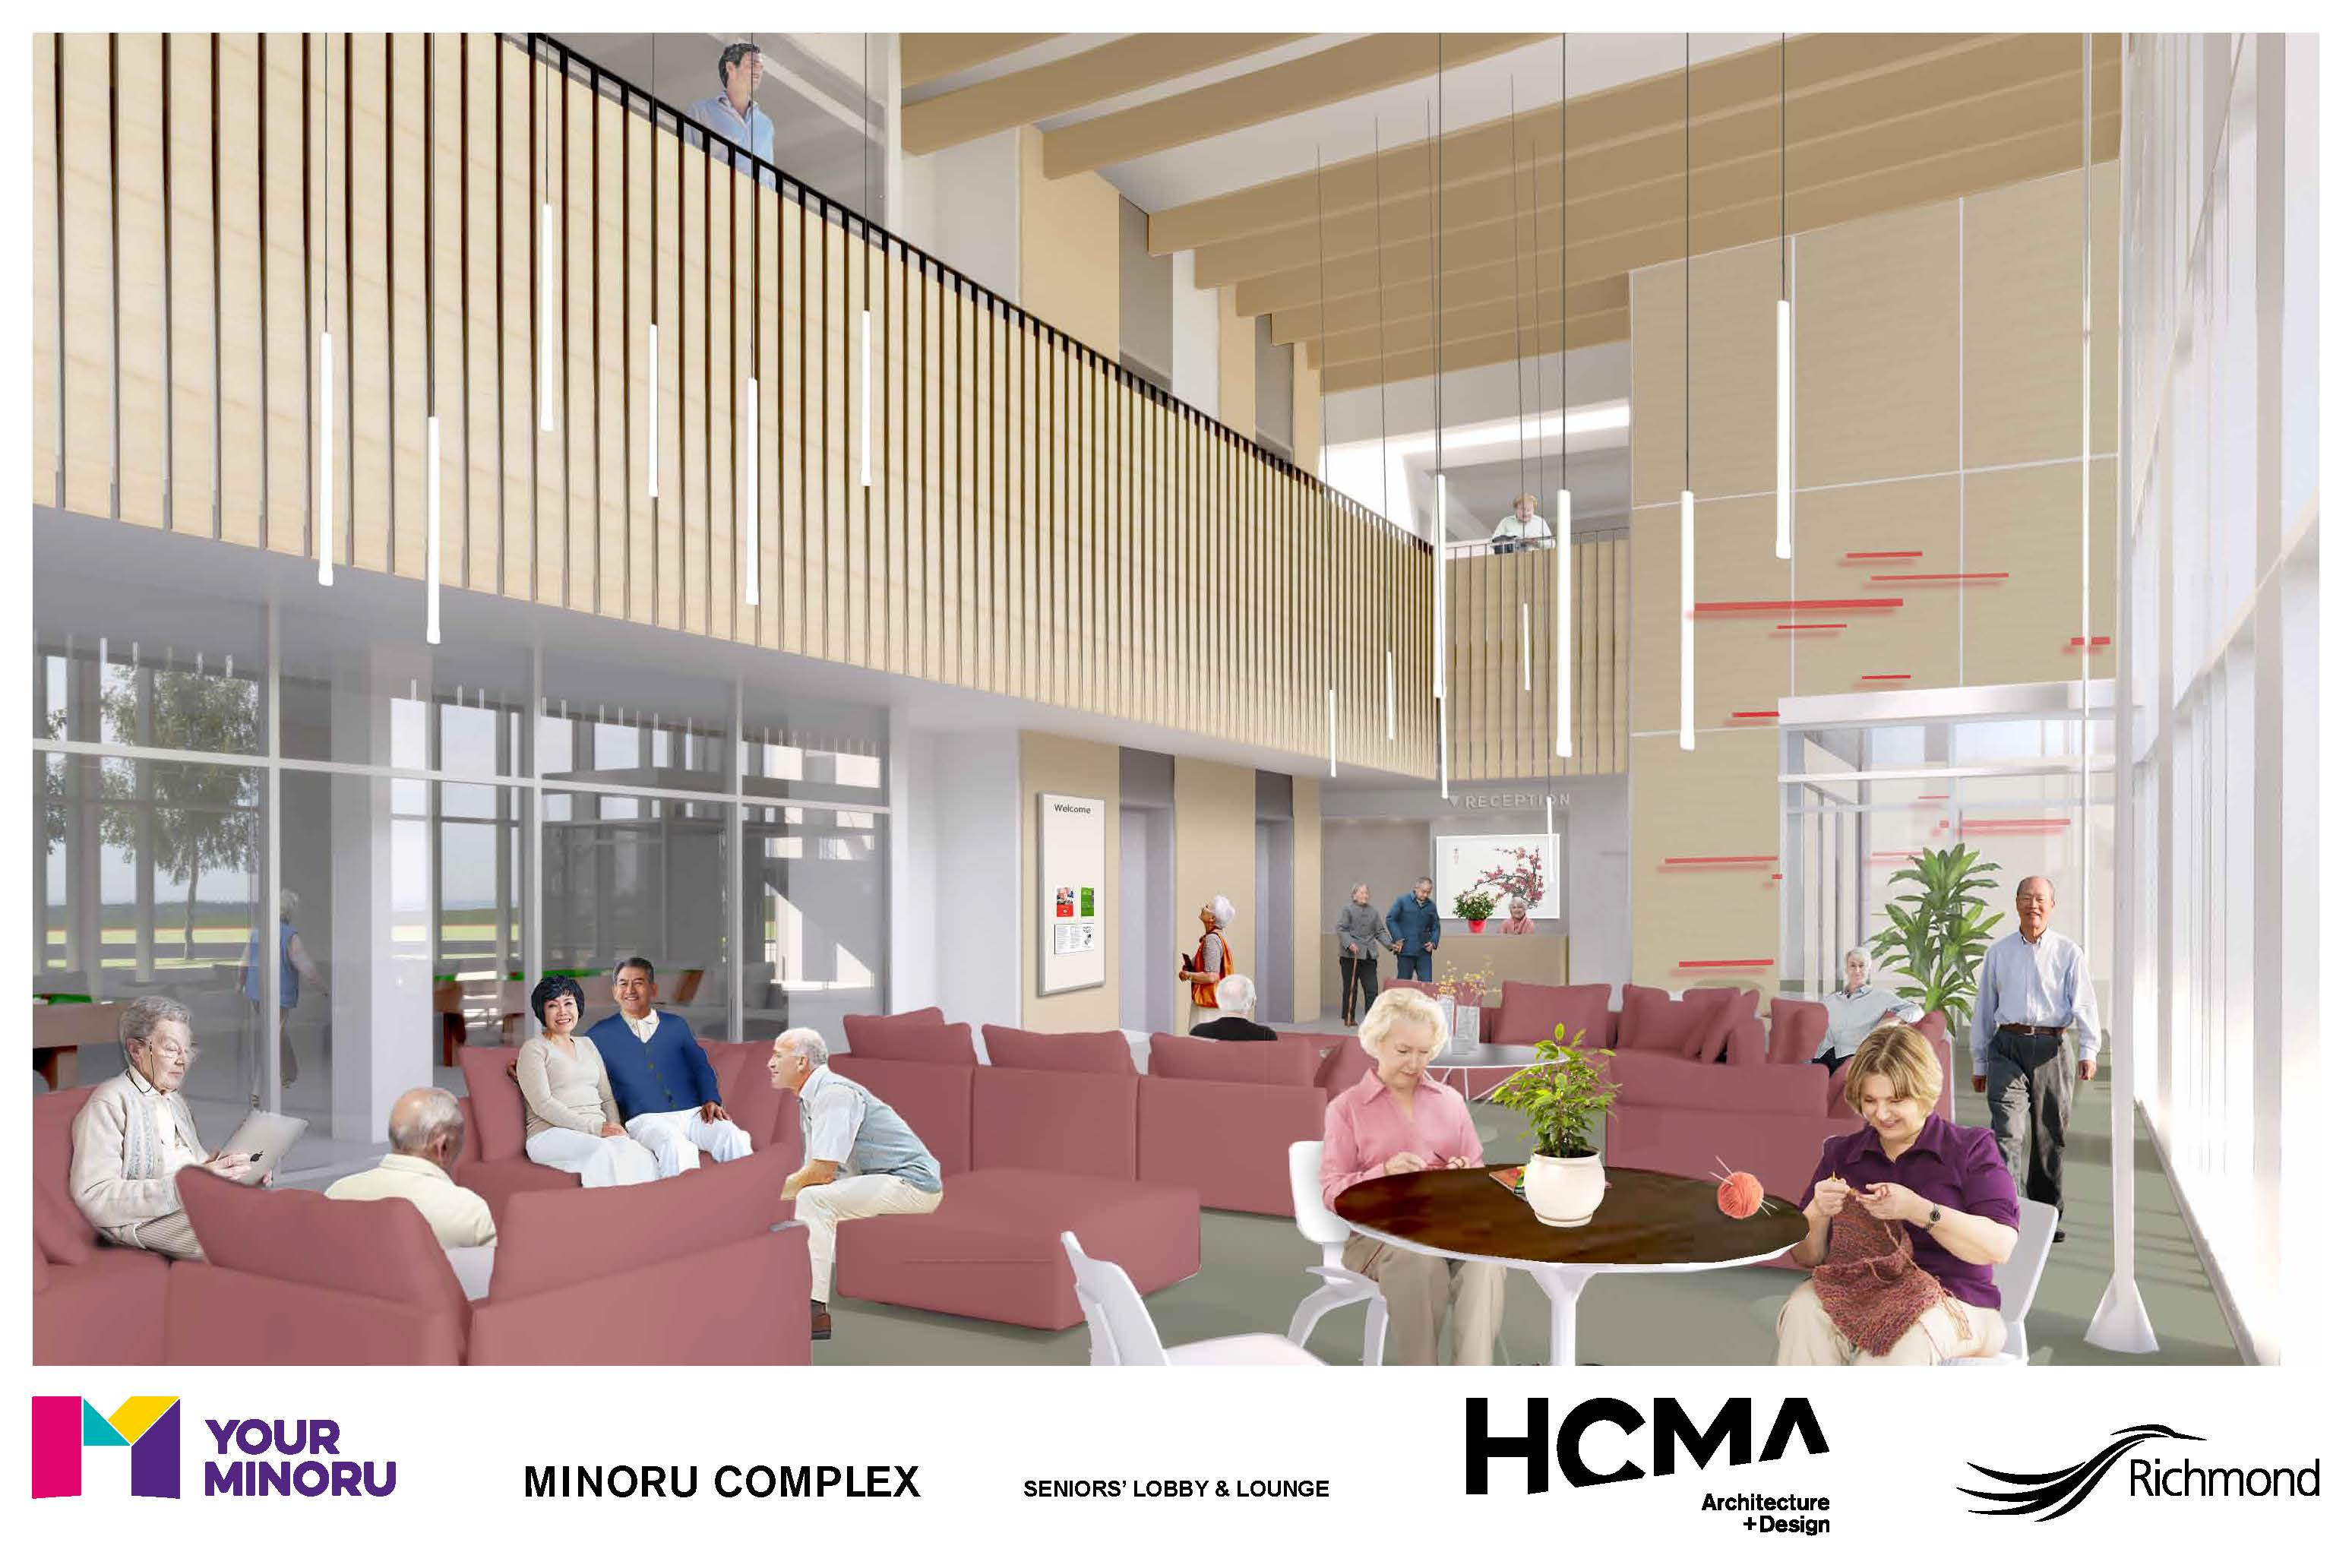 Rendering of Minoru Complex - Seniors lobby and lounge - January 2016